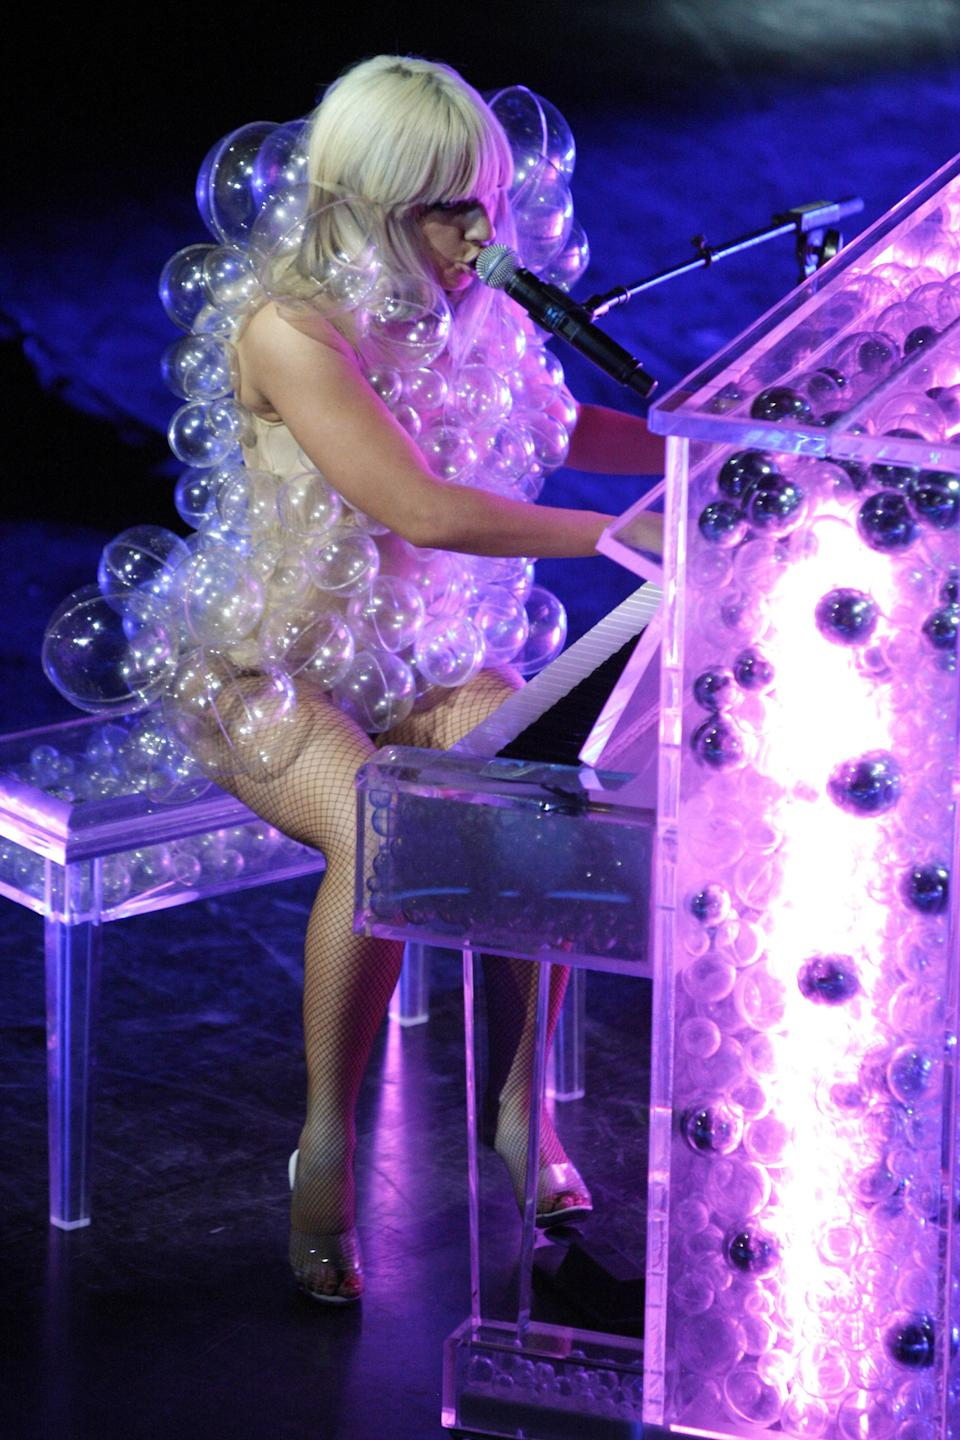 They should have called it the House of Bubbles when Gaga performed at the House of Blues in a bubble dress in 2009.